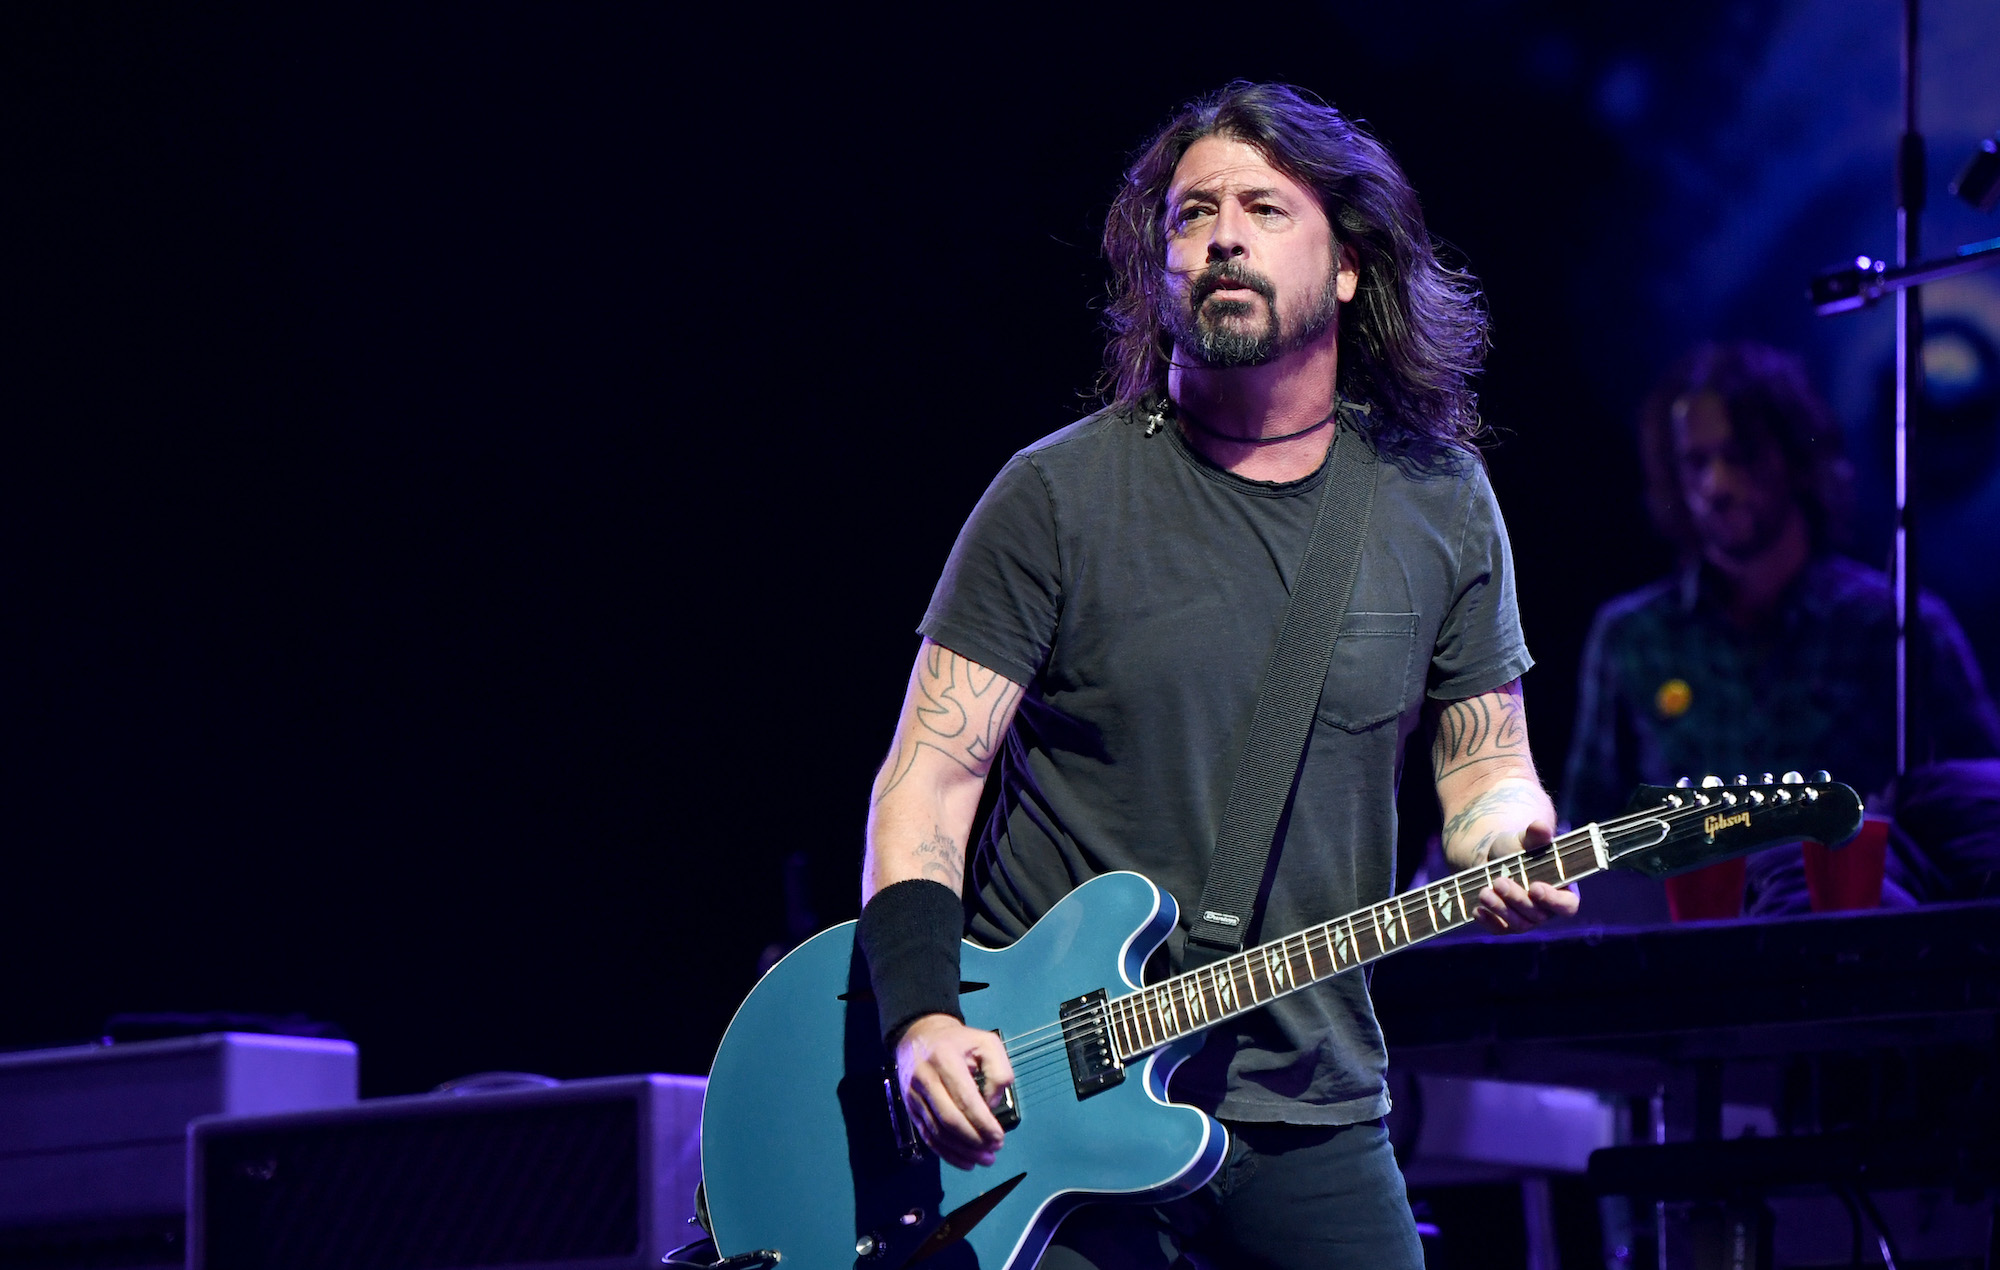 Watch Foo Fighters' play 'My Hero' in archive Austin City Limits performance